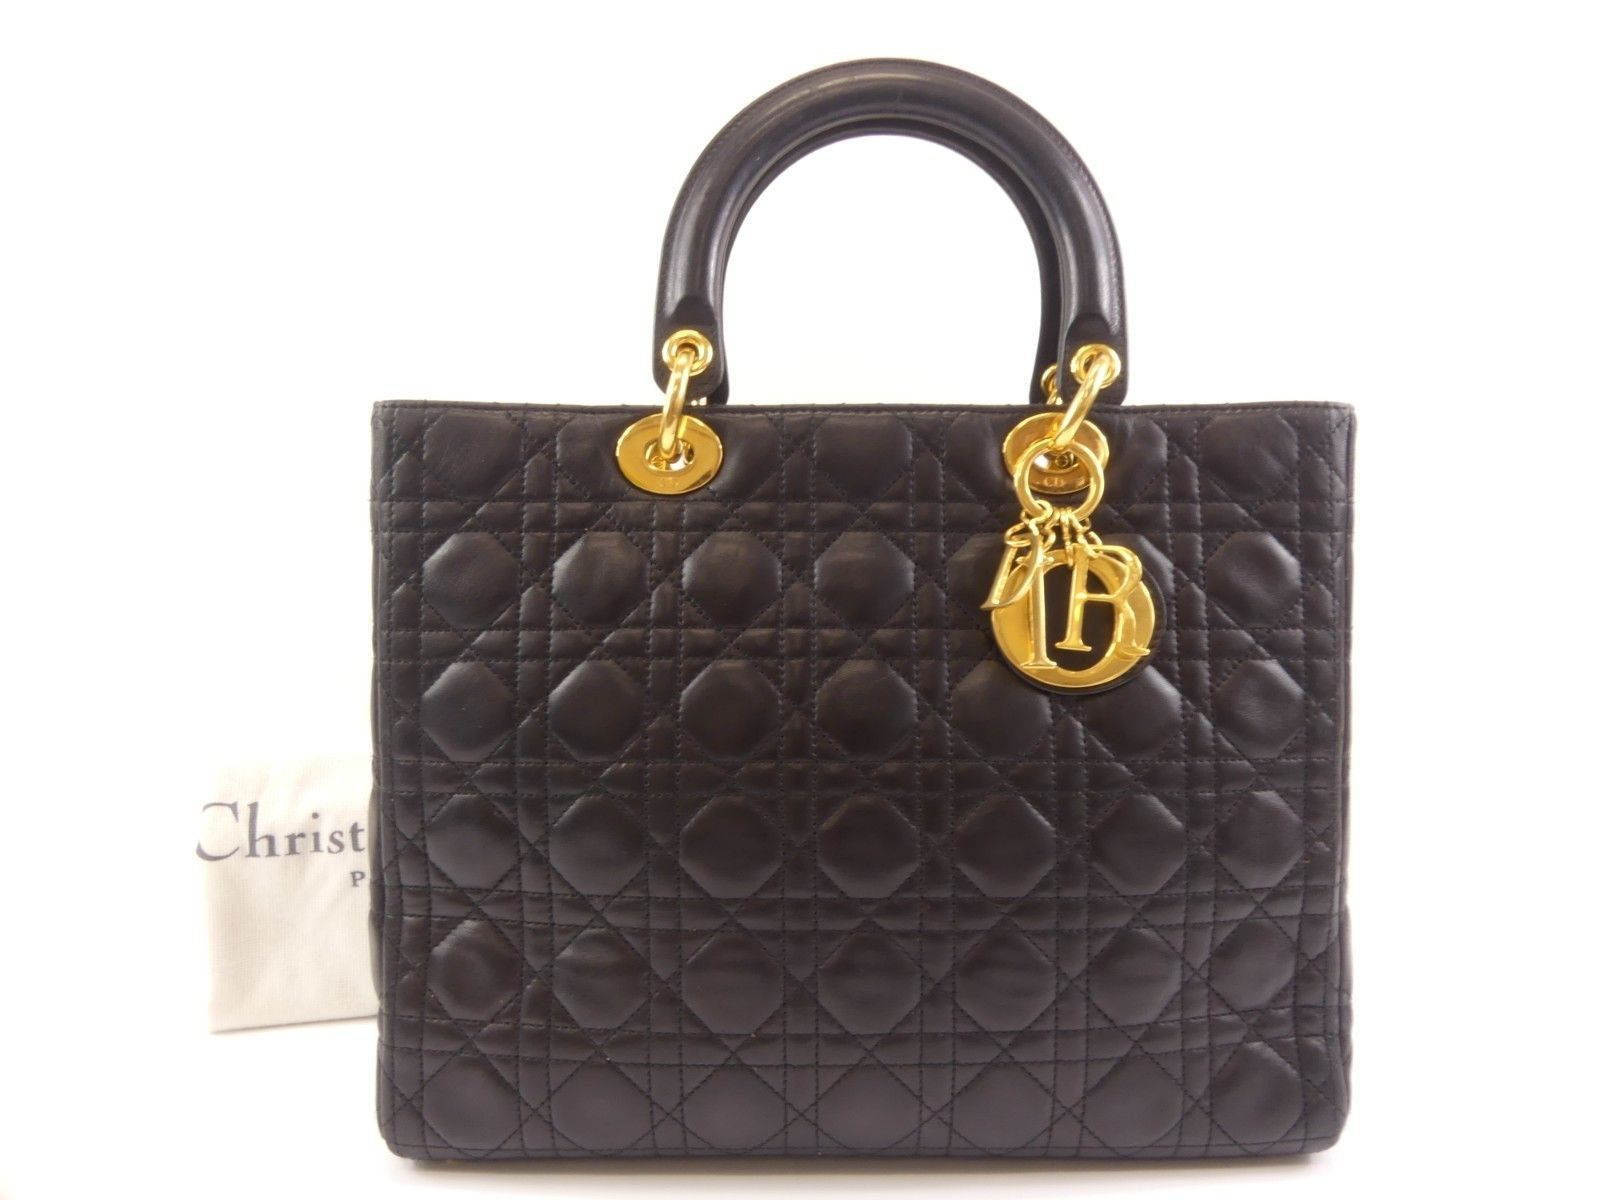 7fba8331d4 Authentic Christian Dior Cannage Lady Dior 2Way Hand Bag Lambskin Black  63146 | eBay